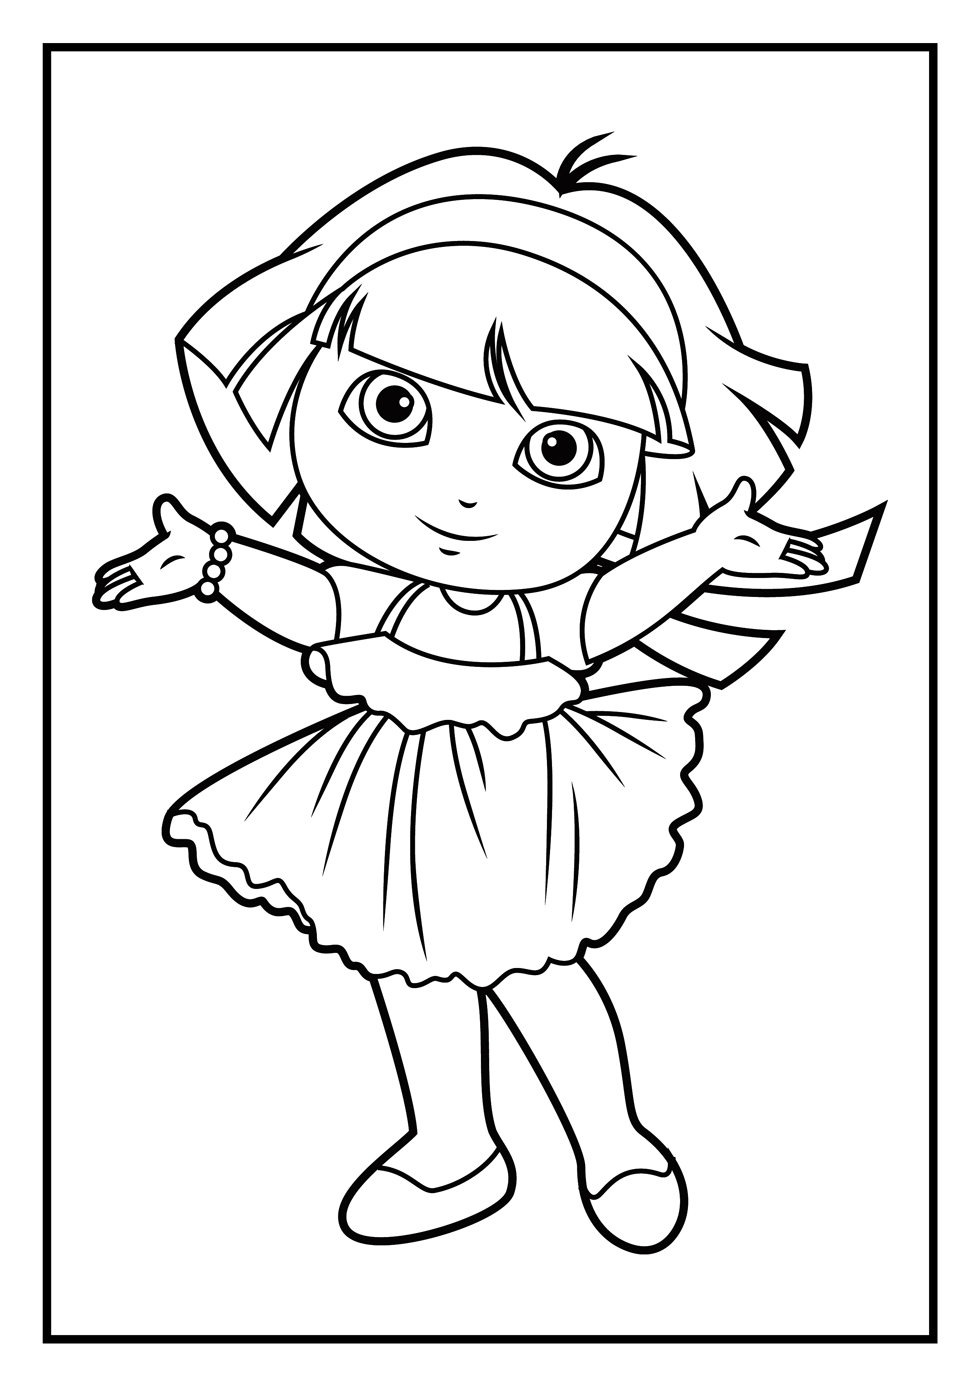 free download dora coloring pages - photo#34